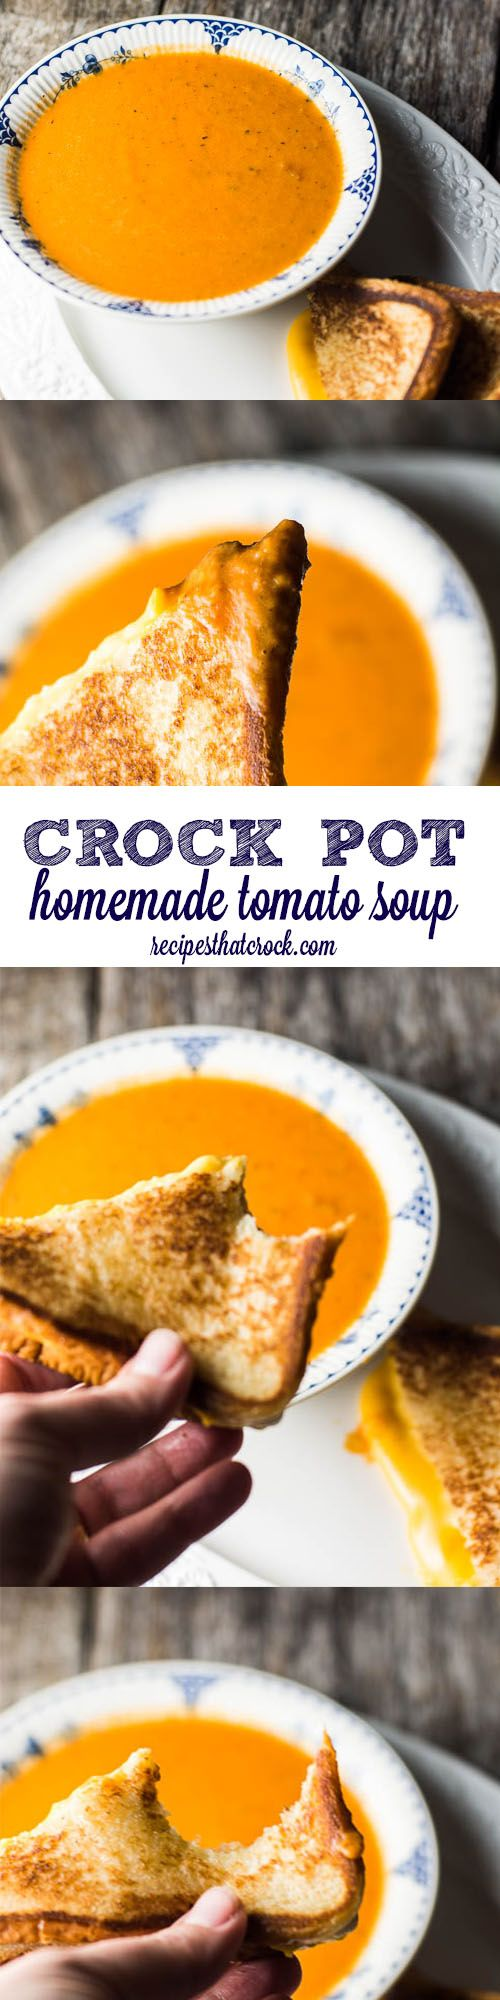 This easy crock pot tomato soup is simple way to make a flavorful homemade tomato soup right at home that beats any pre-made canned soup. One of our favorite easy crock pot recipes.